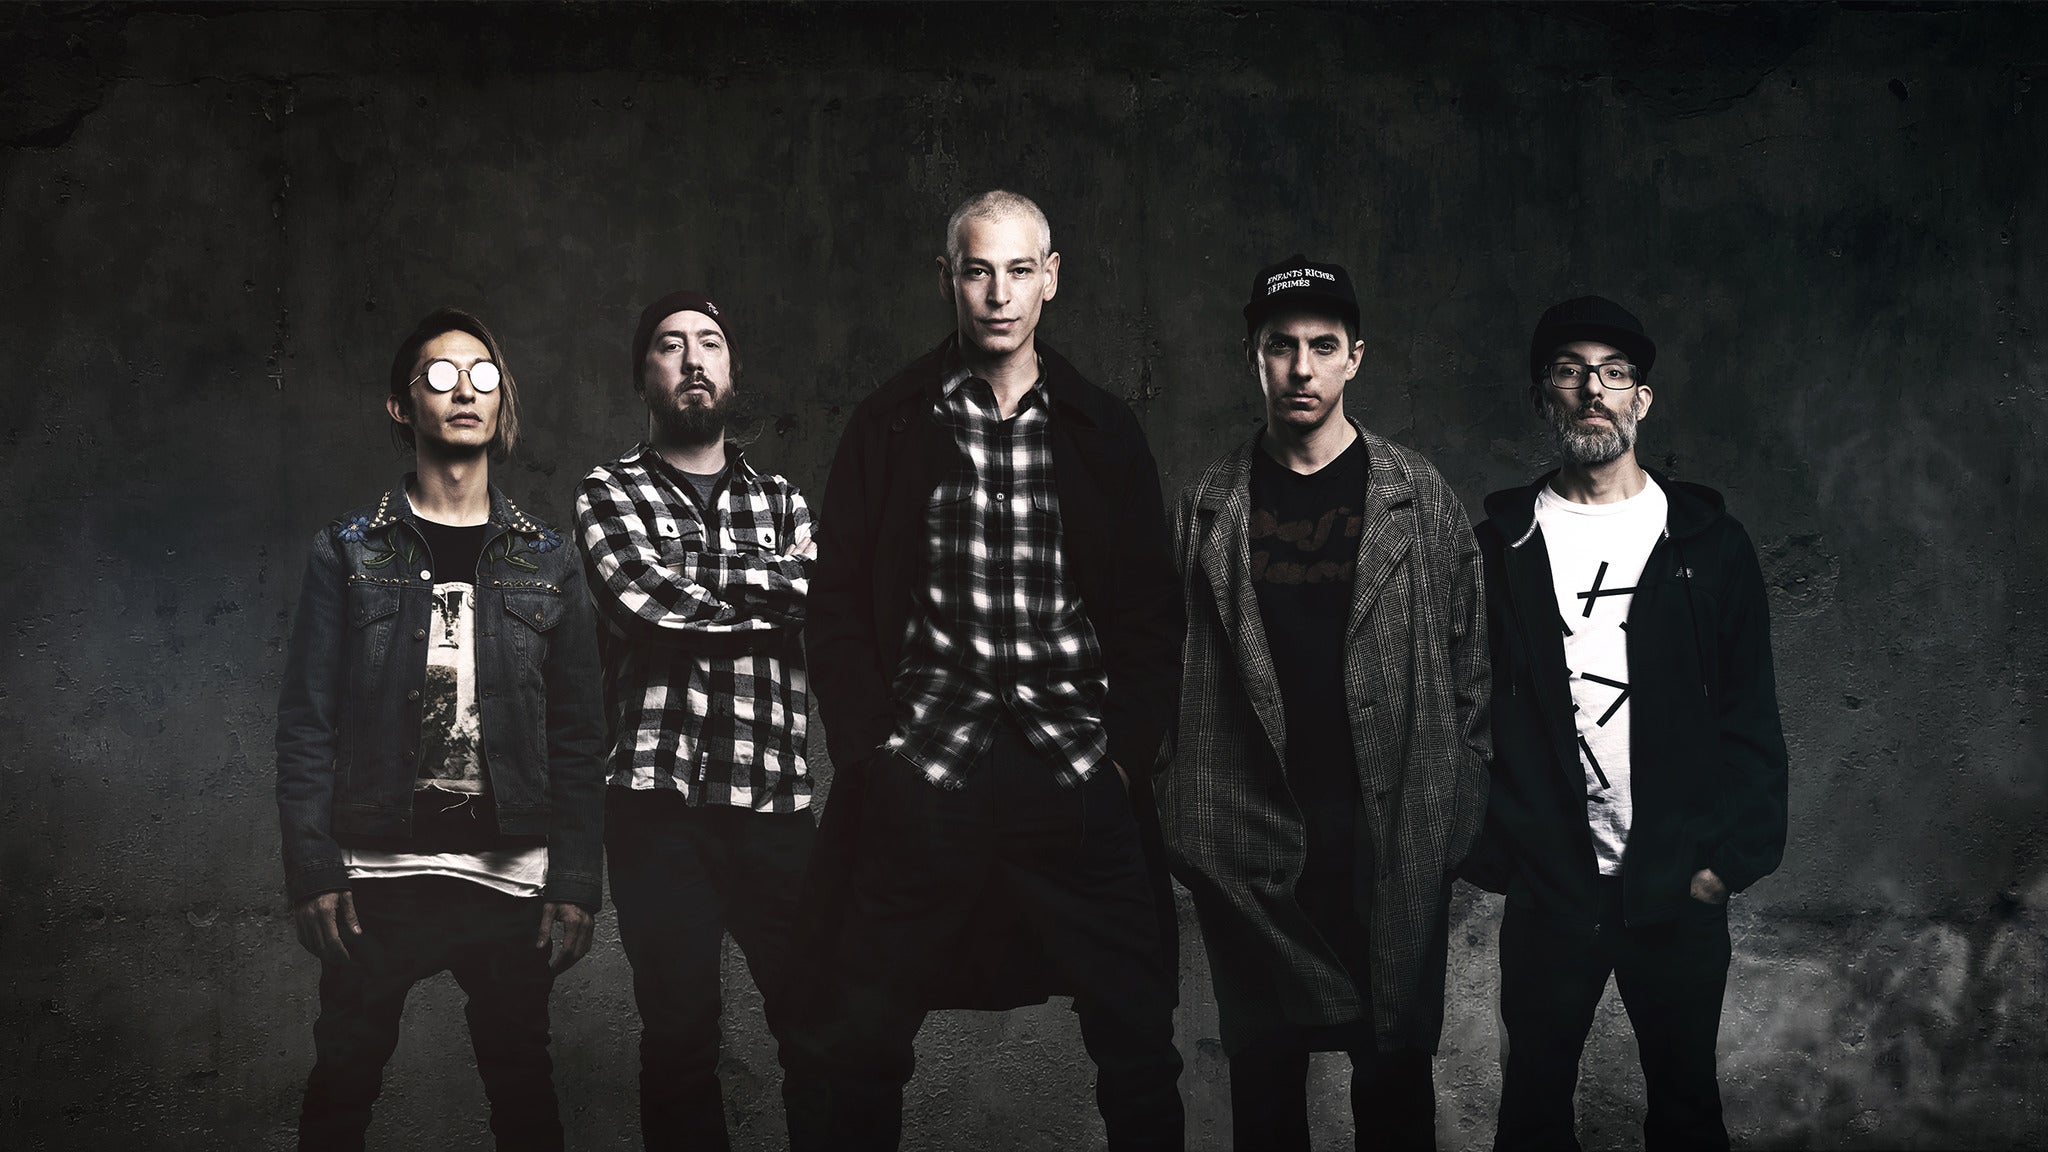 SORRY, THIS EVENT IS NO LONGER ACTIVE<br>Matisyahu - Two Night Experience at Black Sheep - Colorado Springs, CO 80909